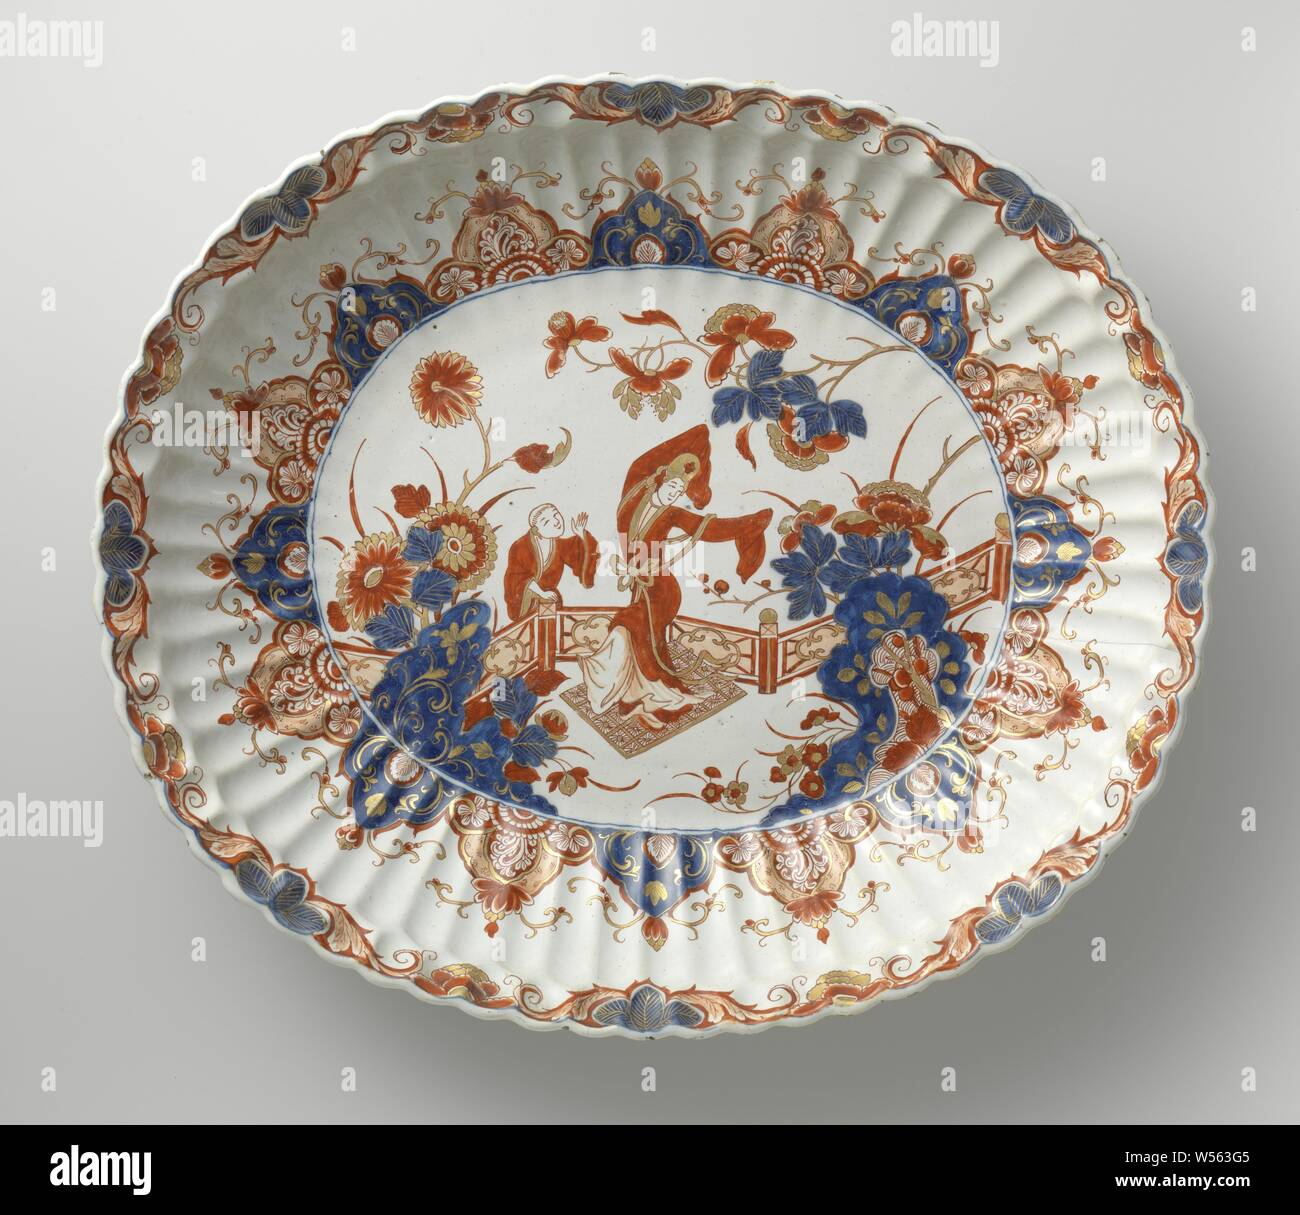 Ewer and basin Basin, Dish of faience. Multicolored painted with figures in a garden and lambrequin edge, Chinese (other cultural aspects), De Grieksche A, Delft, c. 1701 - c. 1722, h 34.8 cm × w 40.5 cm × d 7.4 cm Stock Photo